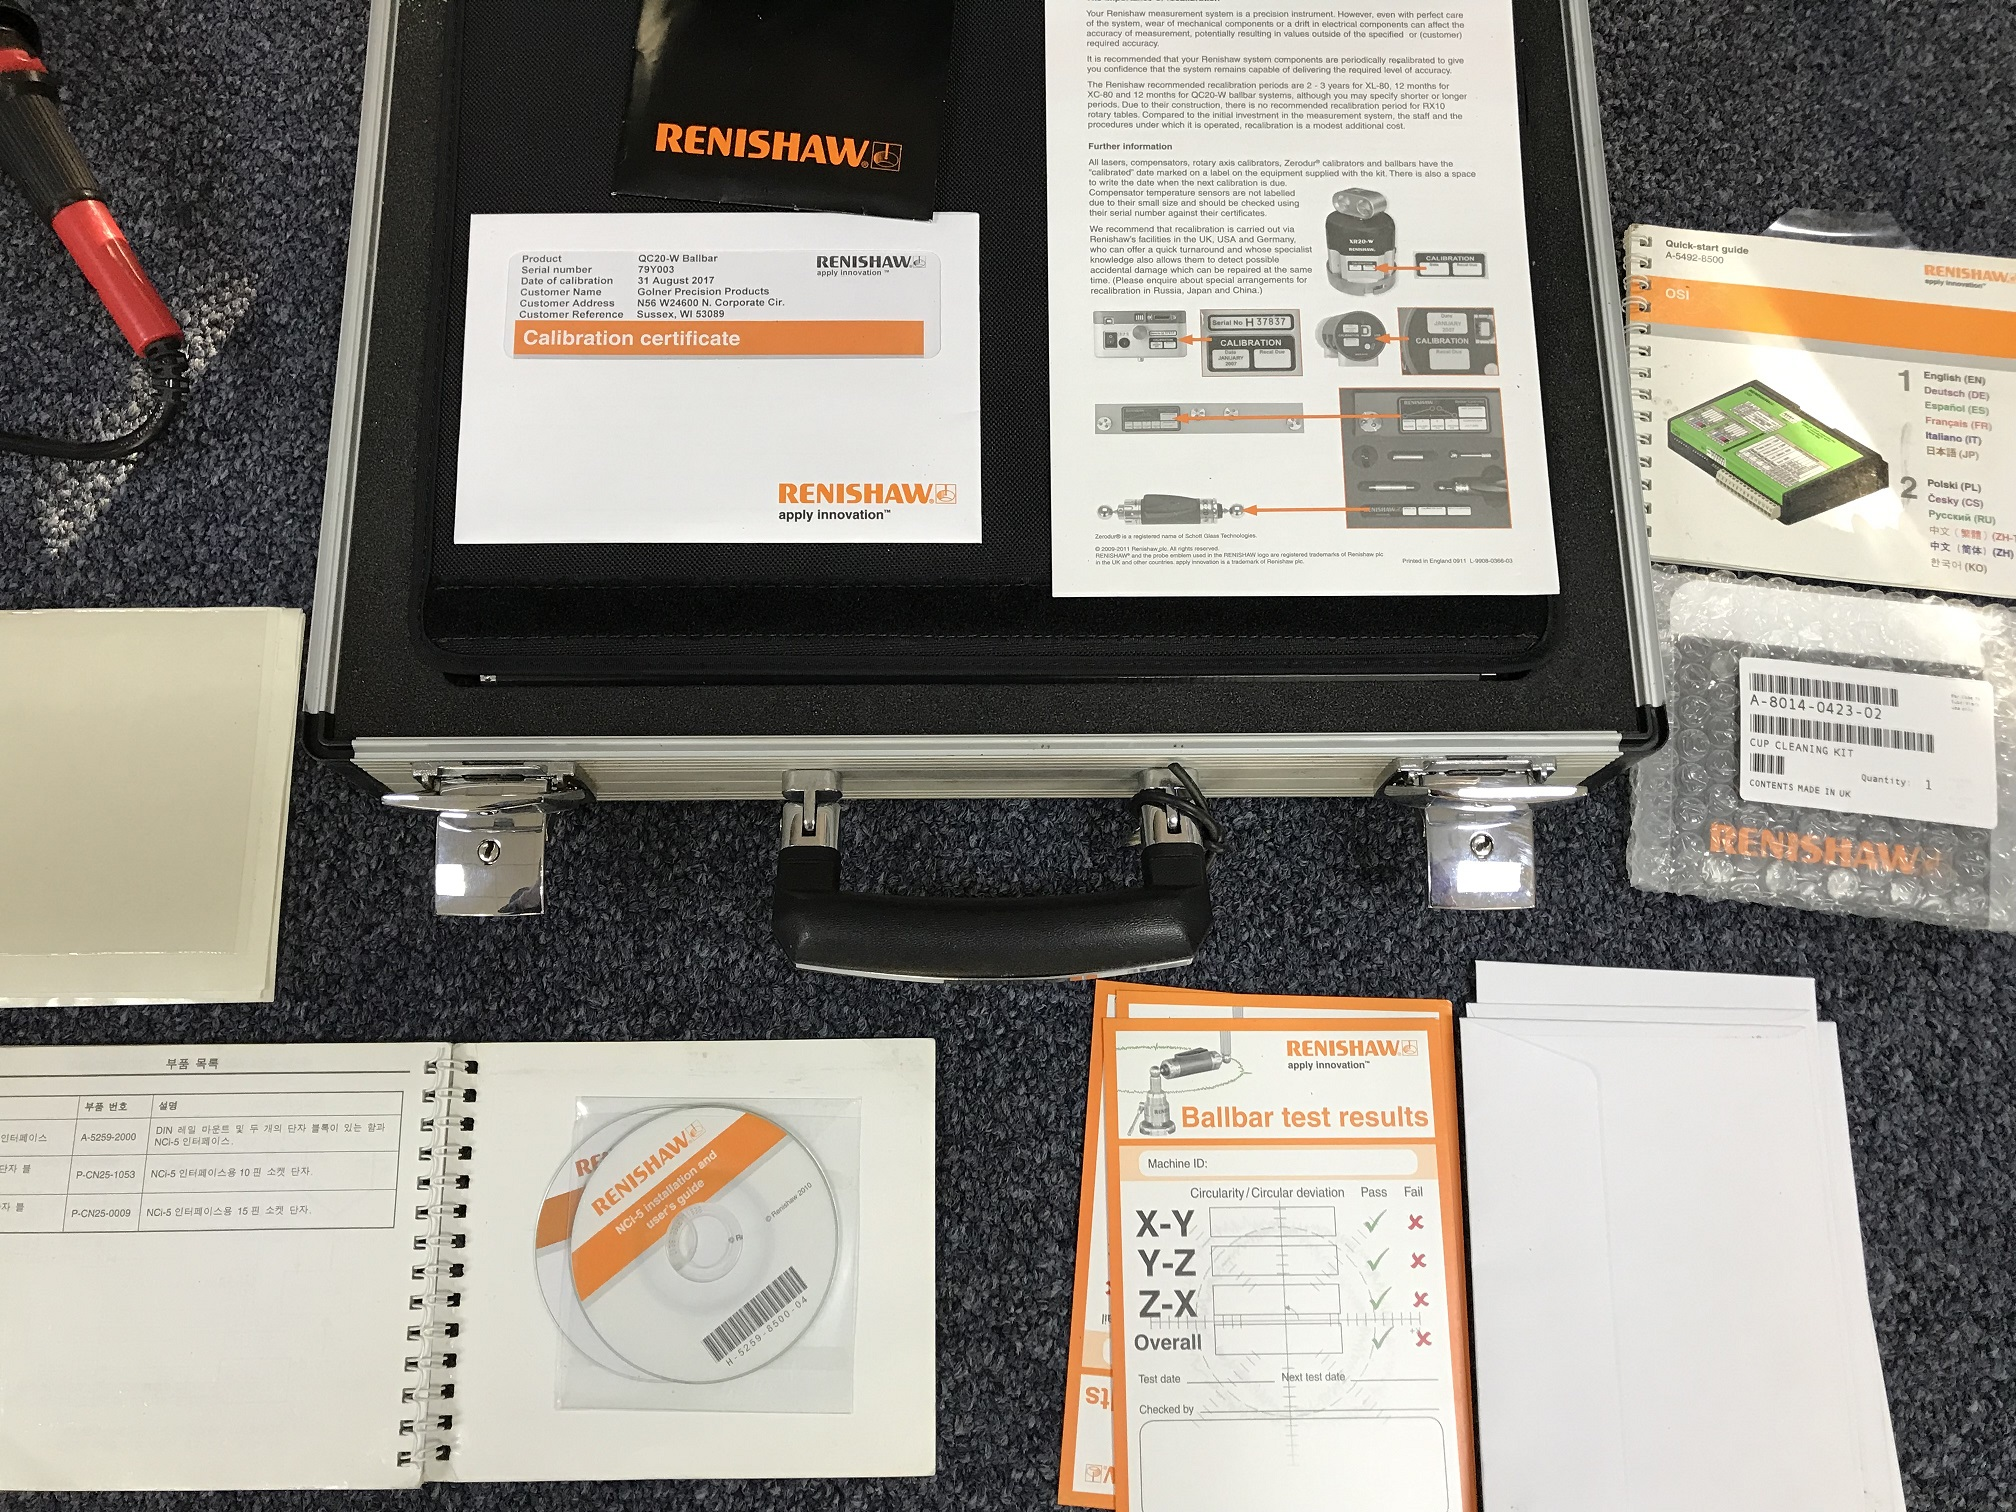 RENISHAW QC20-W BALLBAR INSPECTION KIT, NEW 2014 WITH ALL ATTACHMENTS AND LATHE KIT